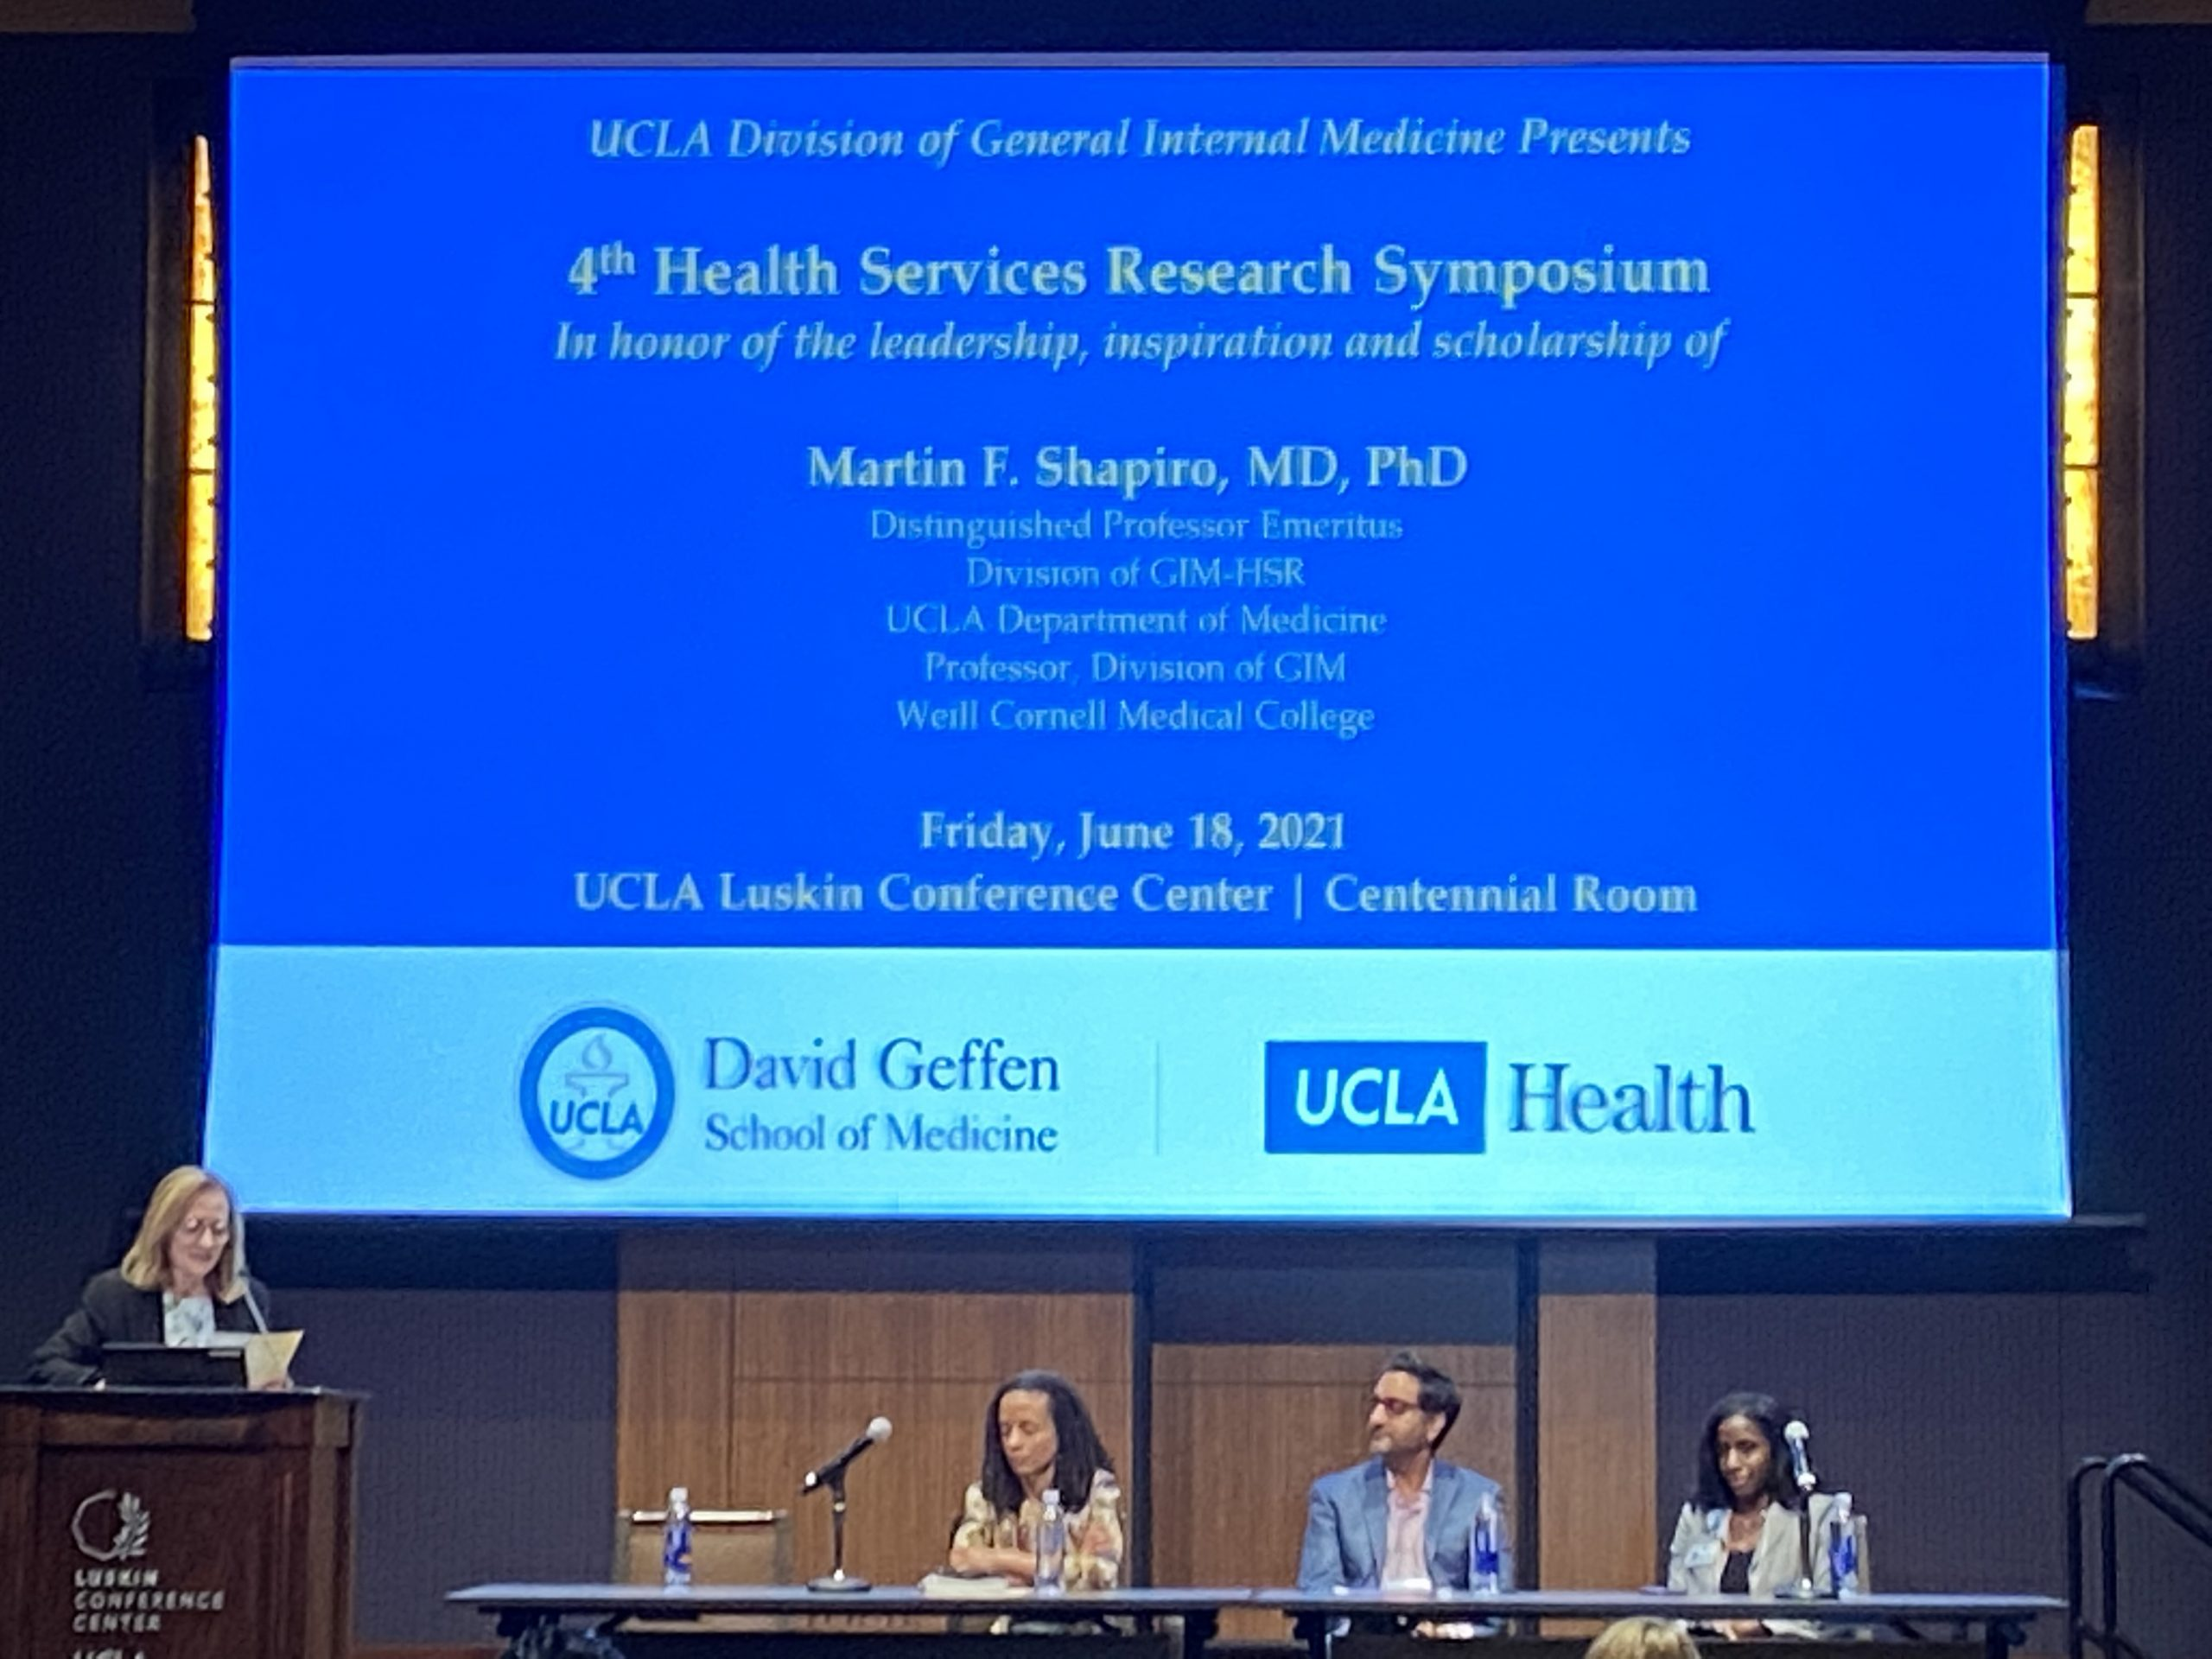 4th Health Services Research Symposium